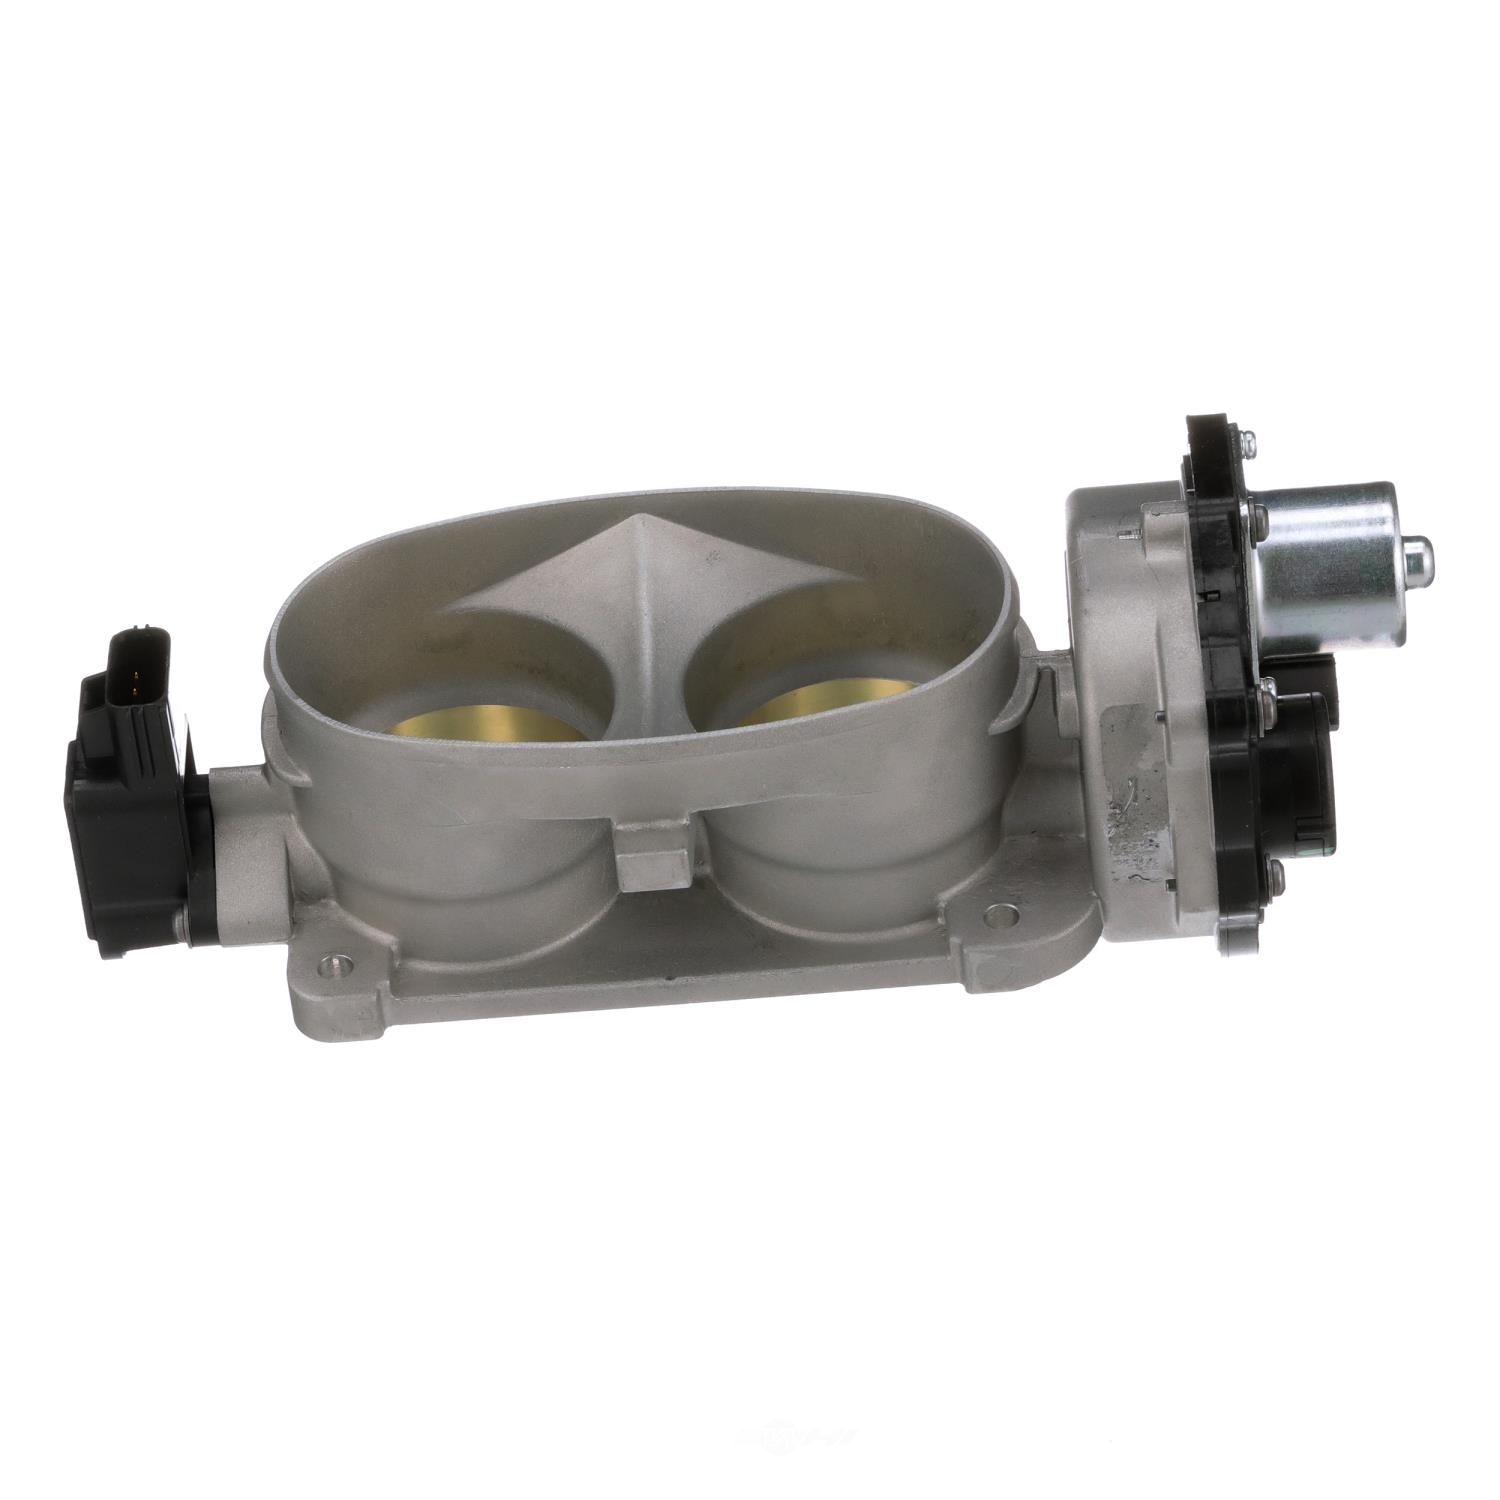 TECHSMART - Fuel Injection Throttle Body Assembly - TCS S20021